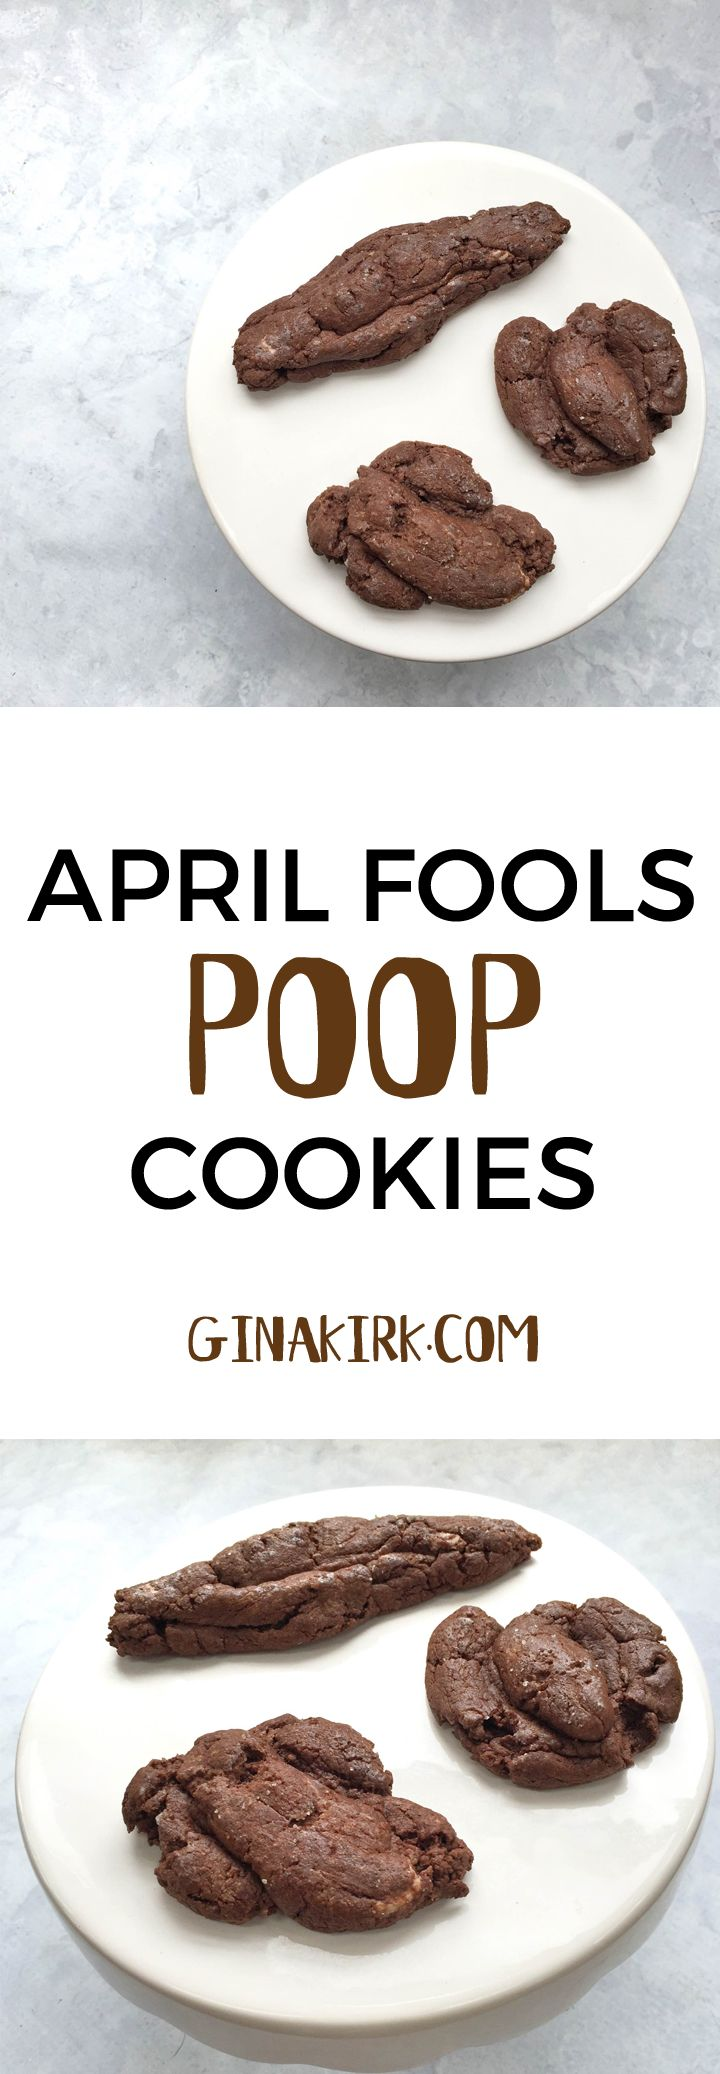 April fools' day poop cookies | poop cookie recipe | food pranks | April fools' day recipes | April fools' day pranks for kids GinaKirk.com @ginaekirk